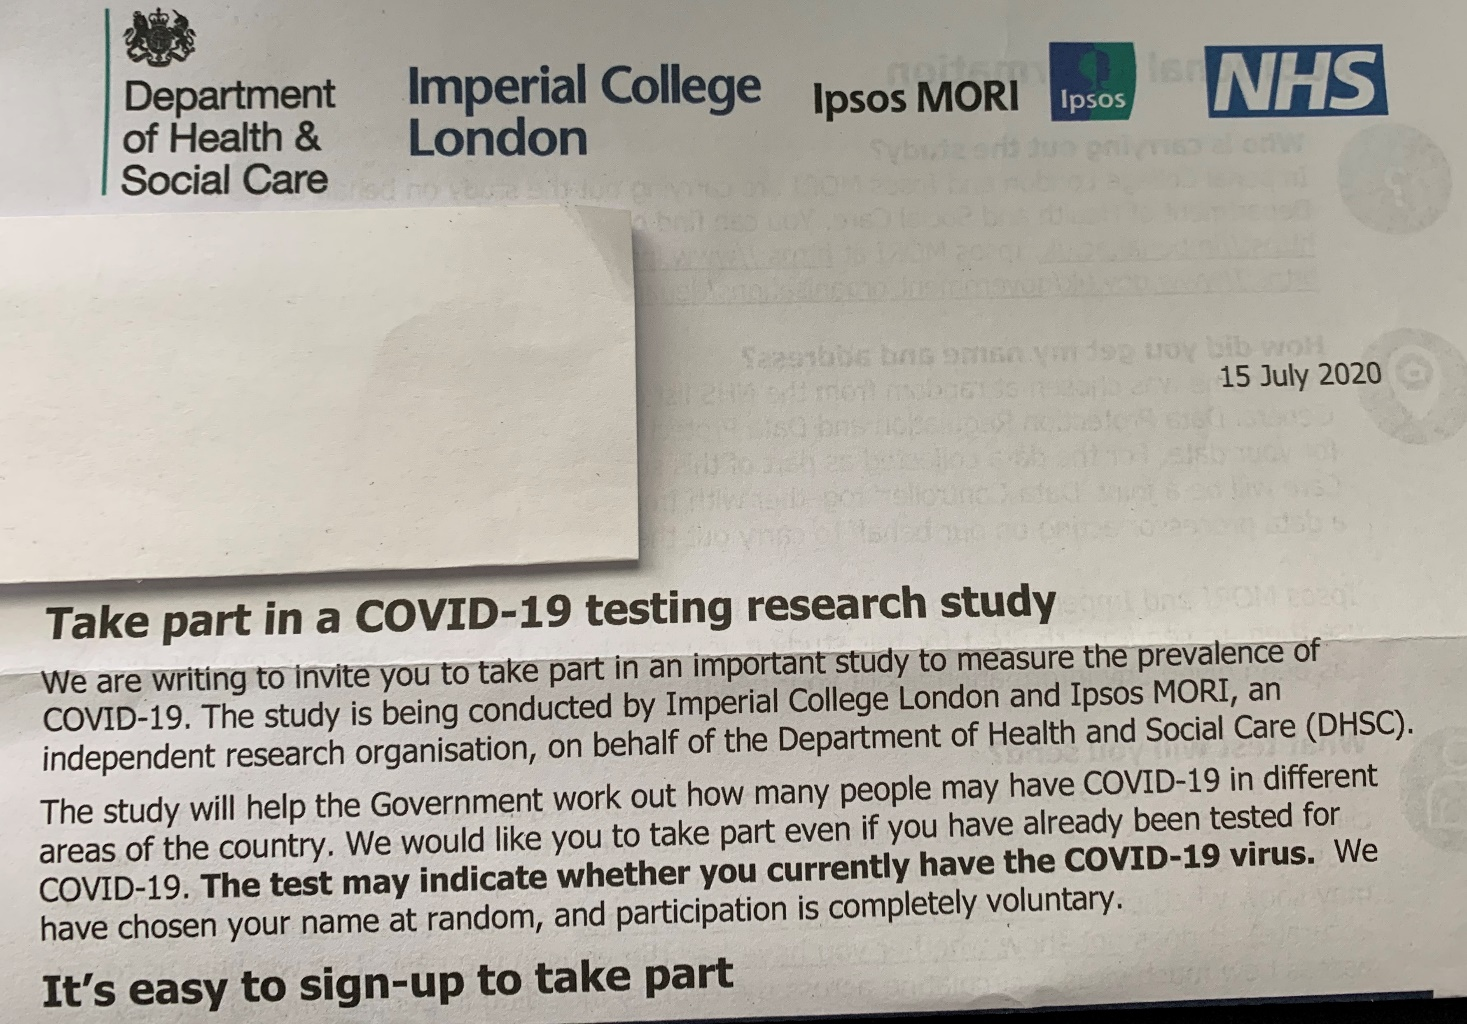 COVID-19 TESTING RESEARCH STUDY - The Haemophilia Society